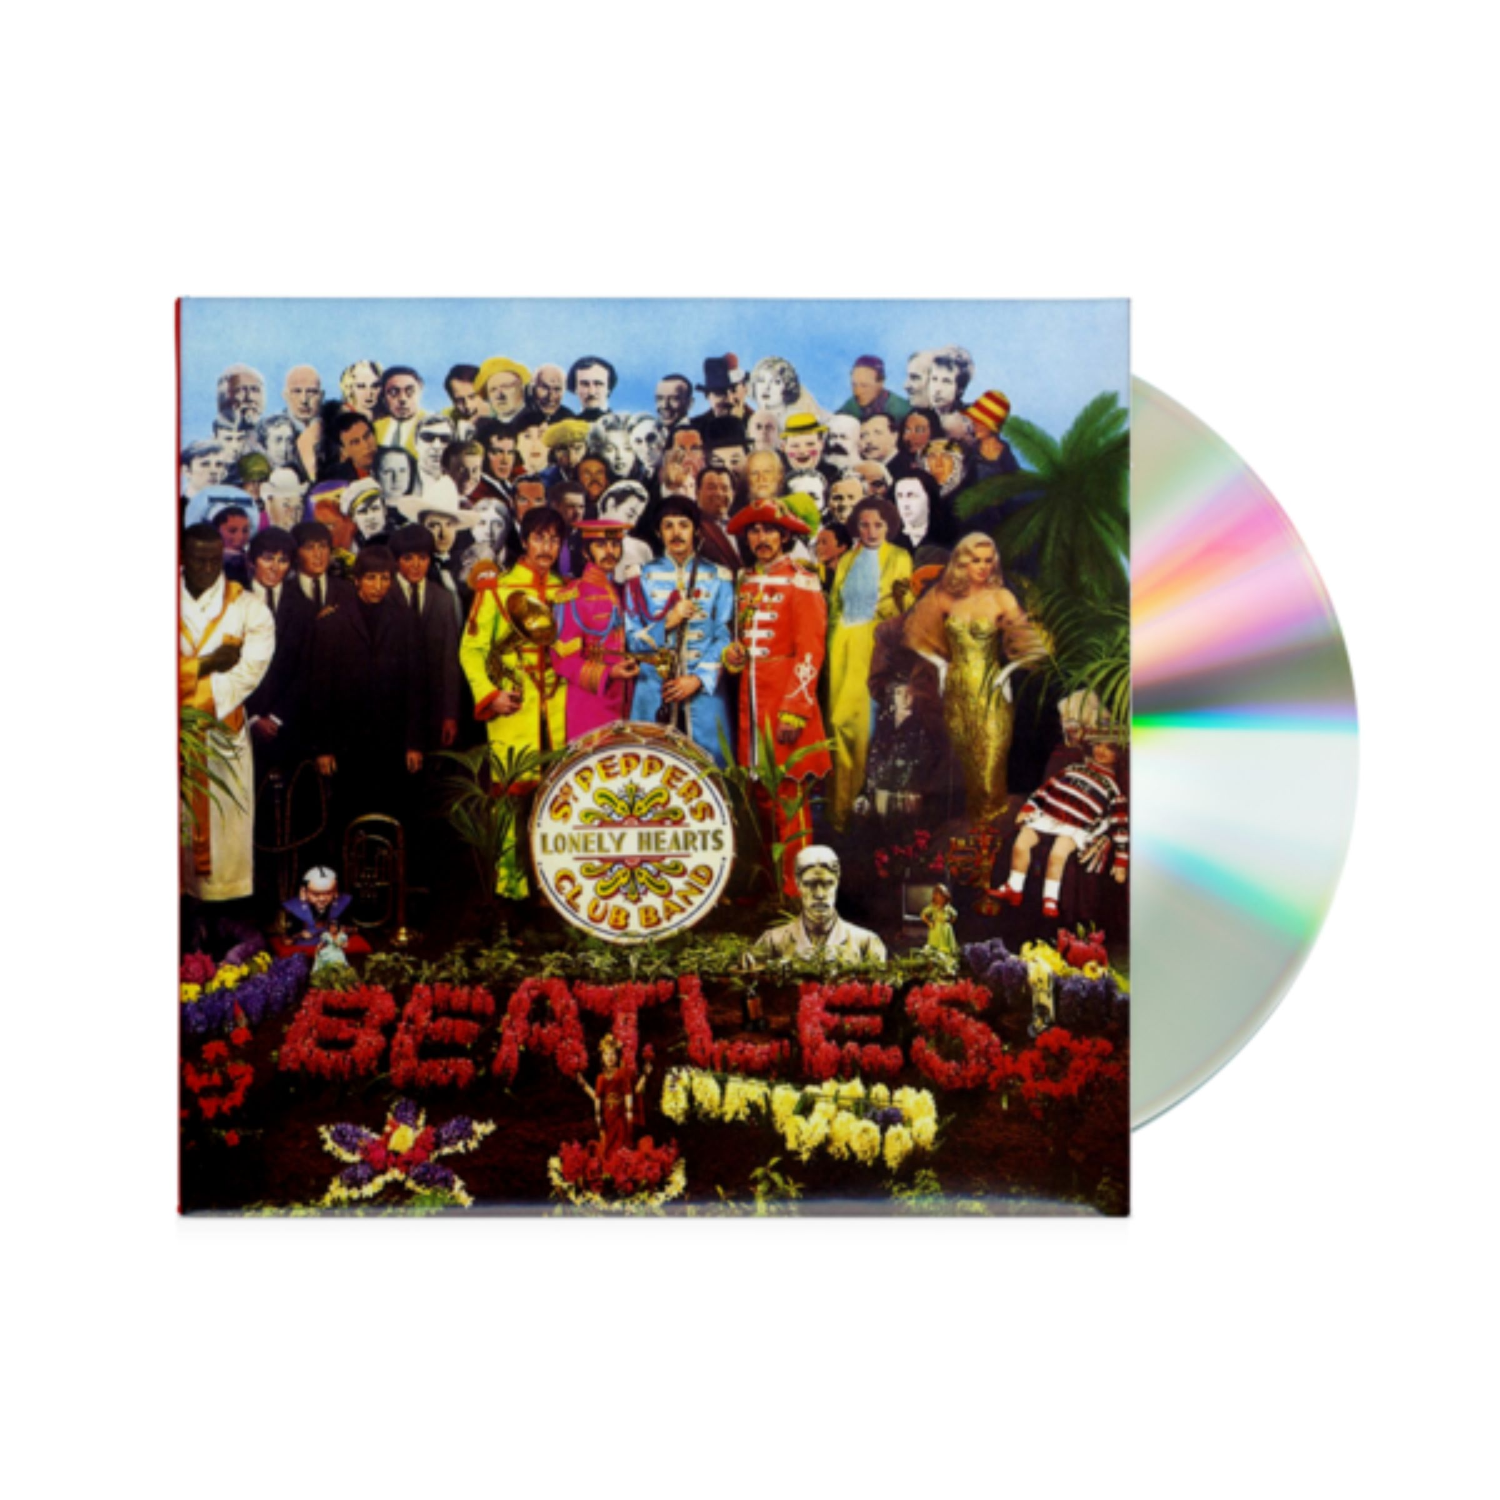 Sgt. Pepper Lonely Hearts Club Band CD